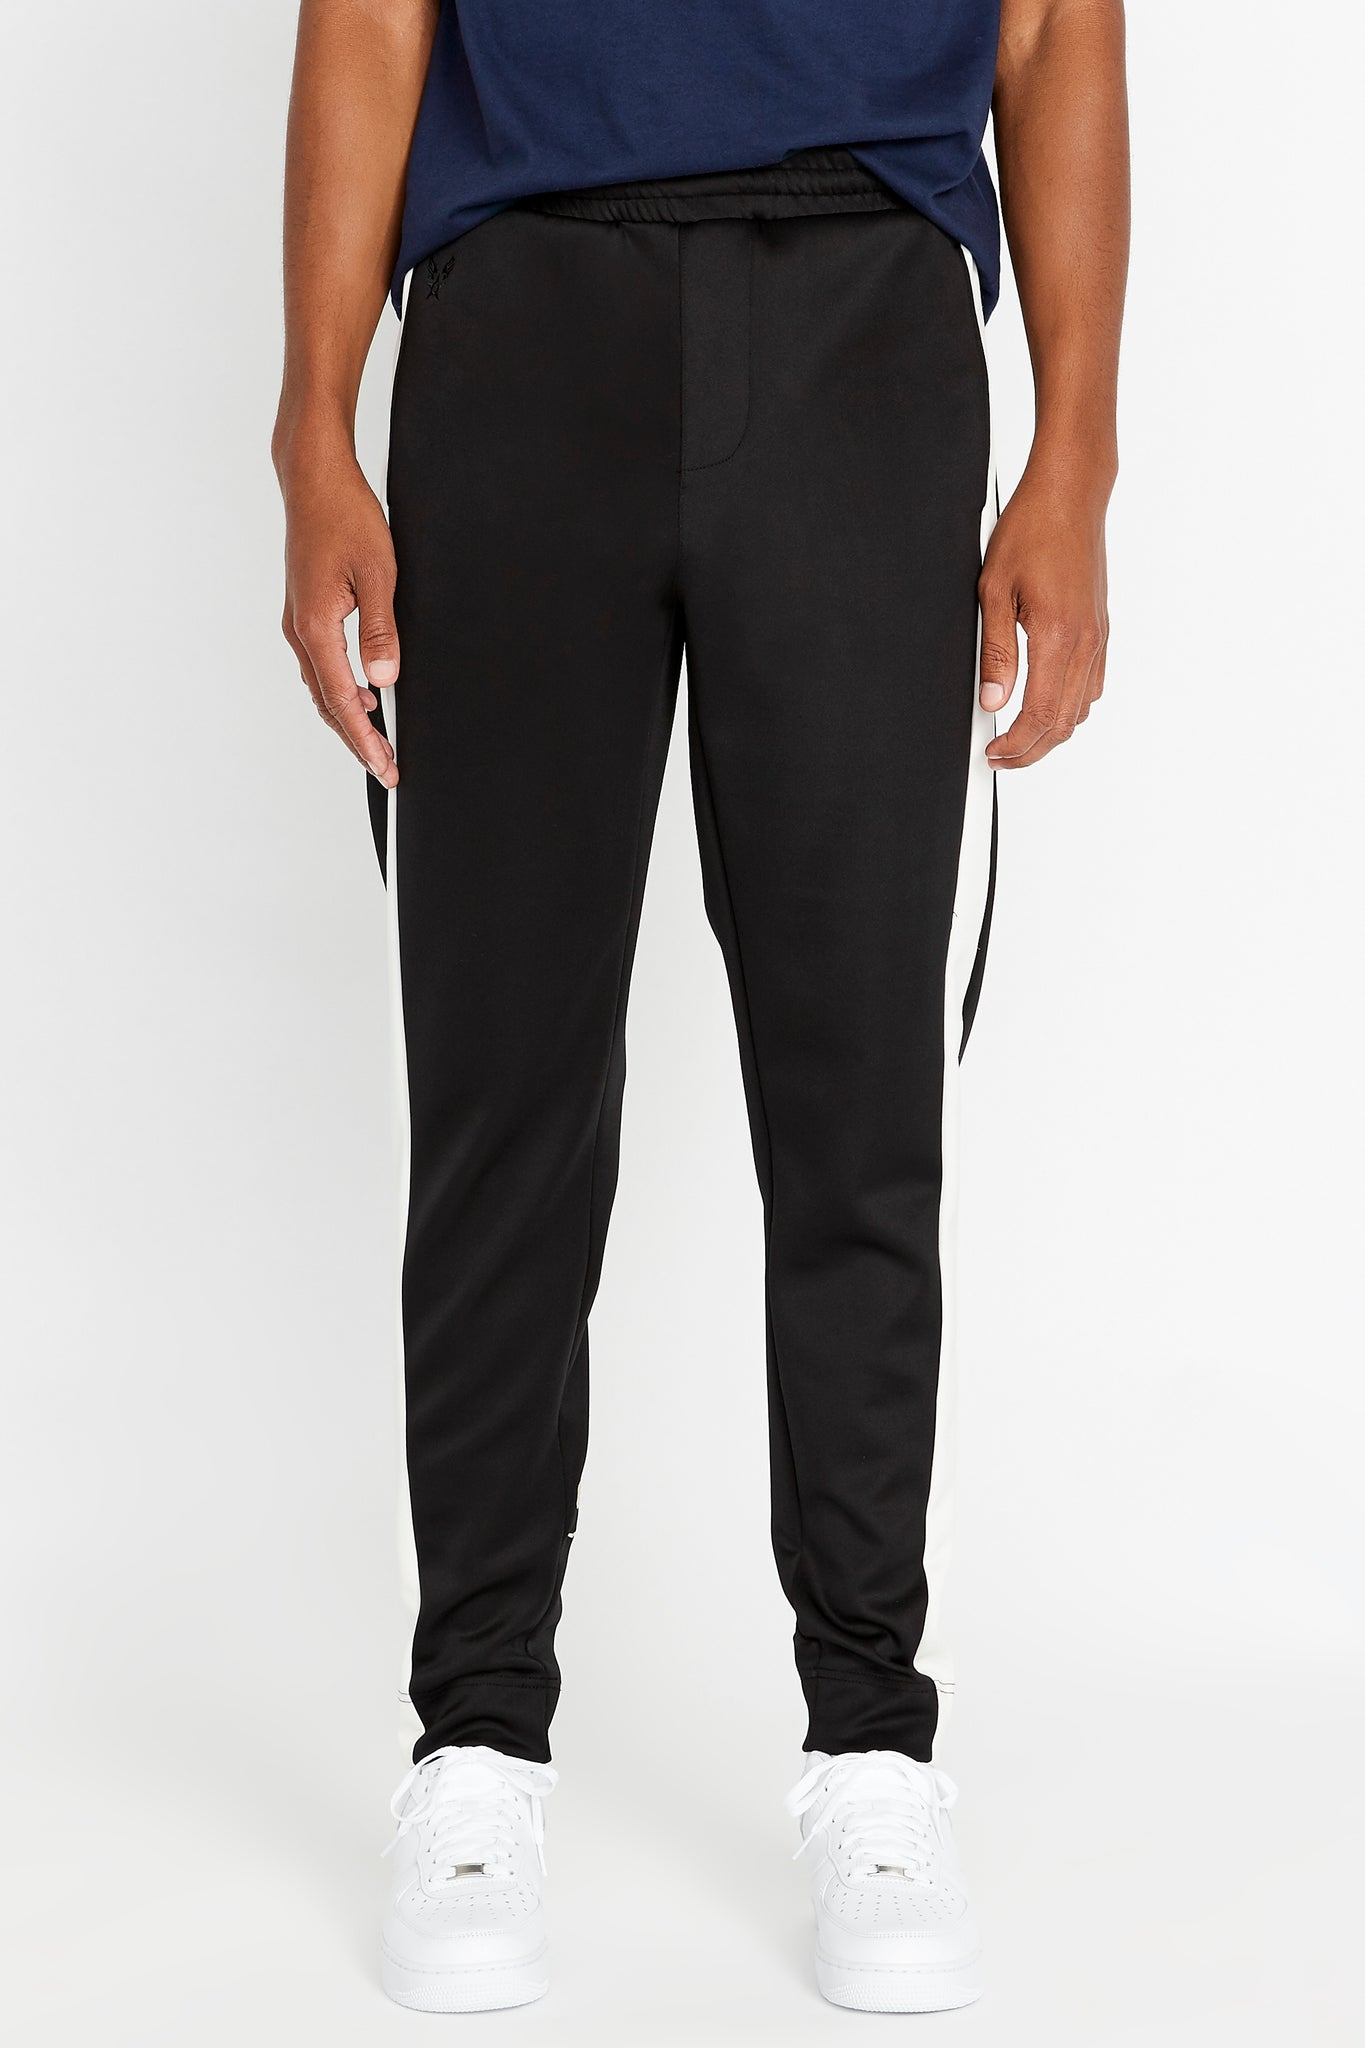 Men's neoprene jogger pants with side white stripe